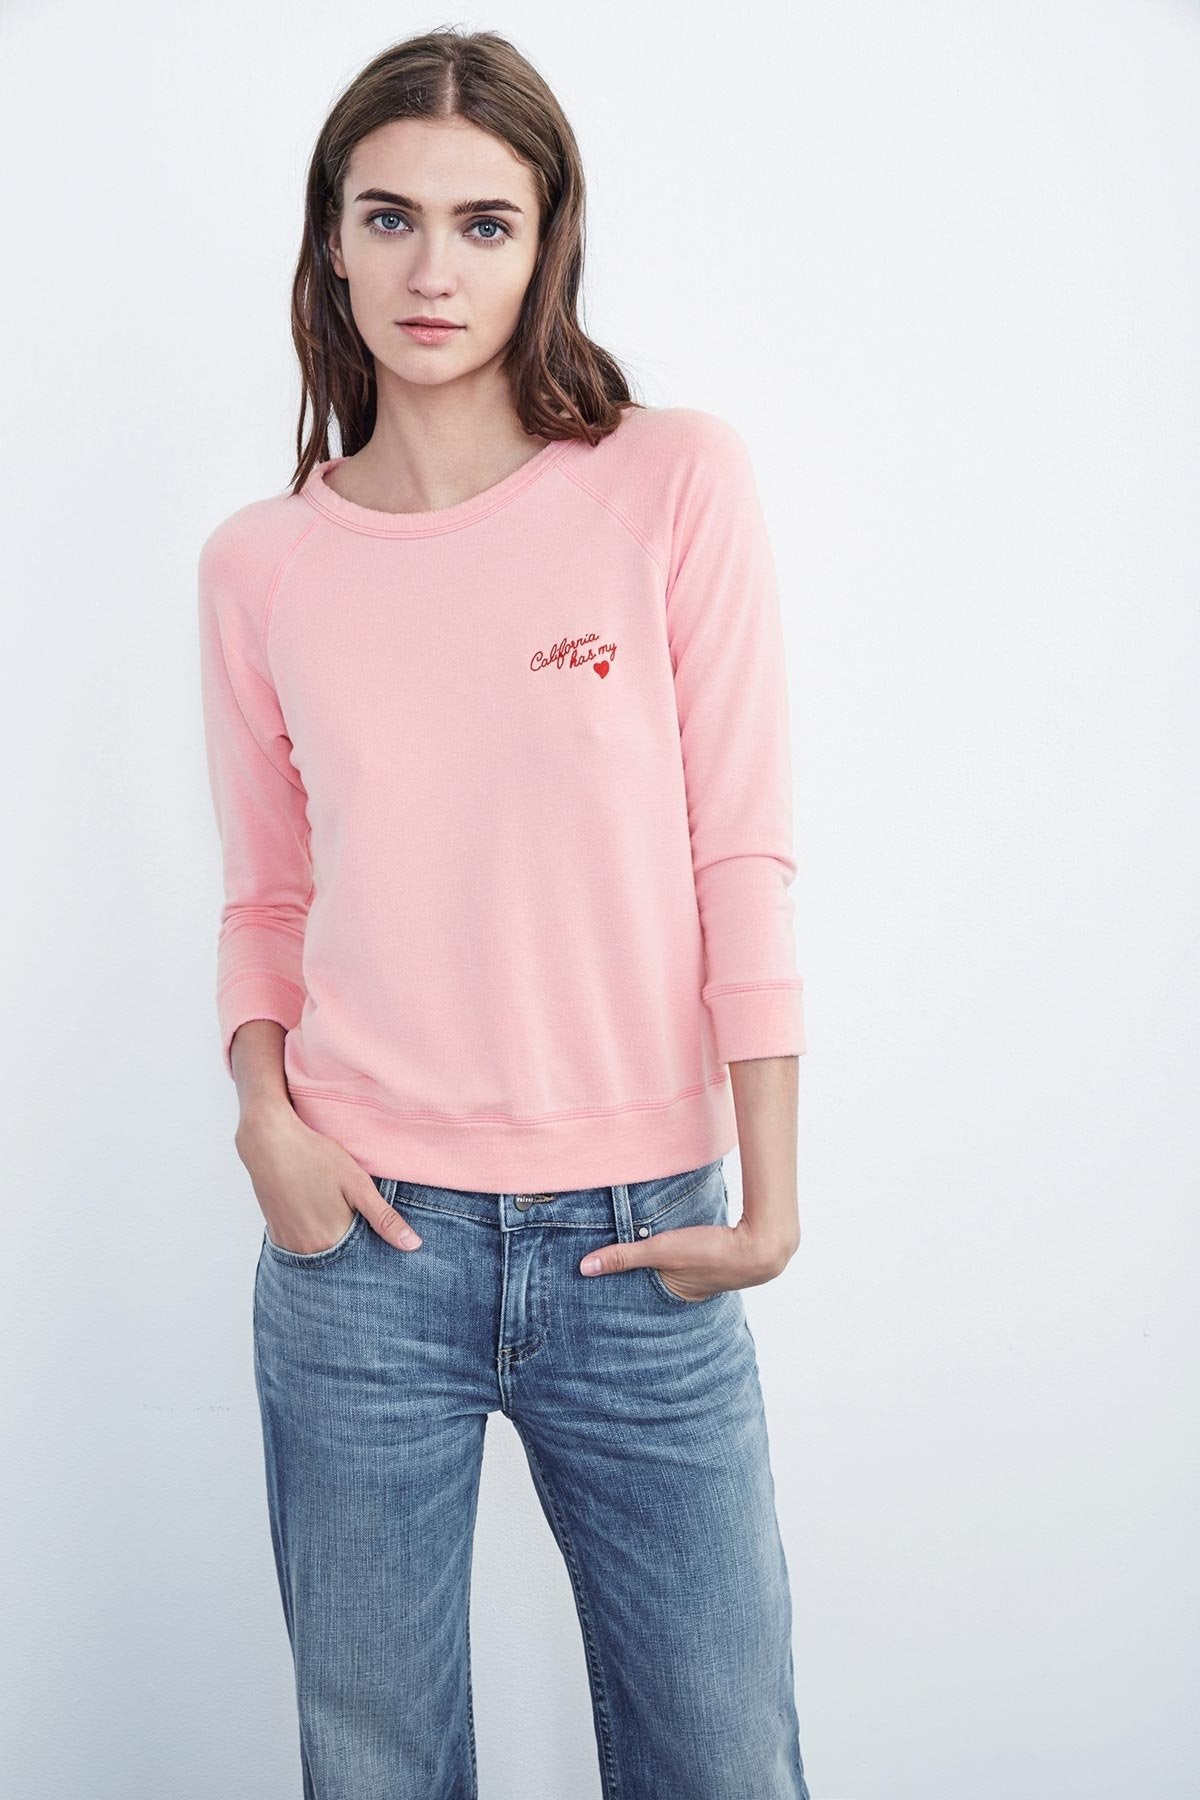 MARLEIGH EMBROIDERED FLEECE RAGLAN TOP